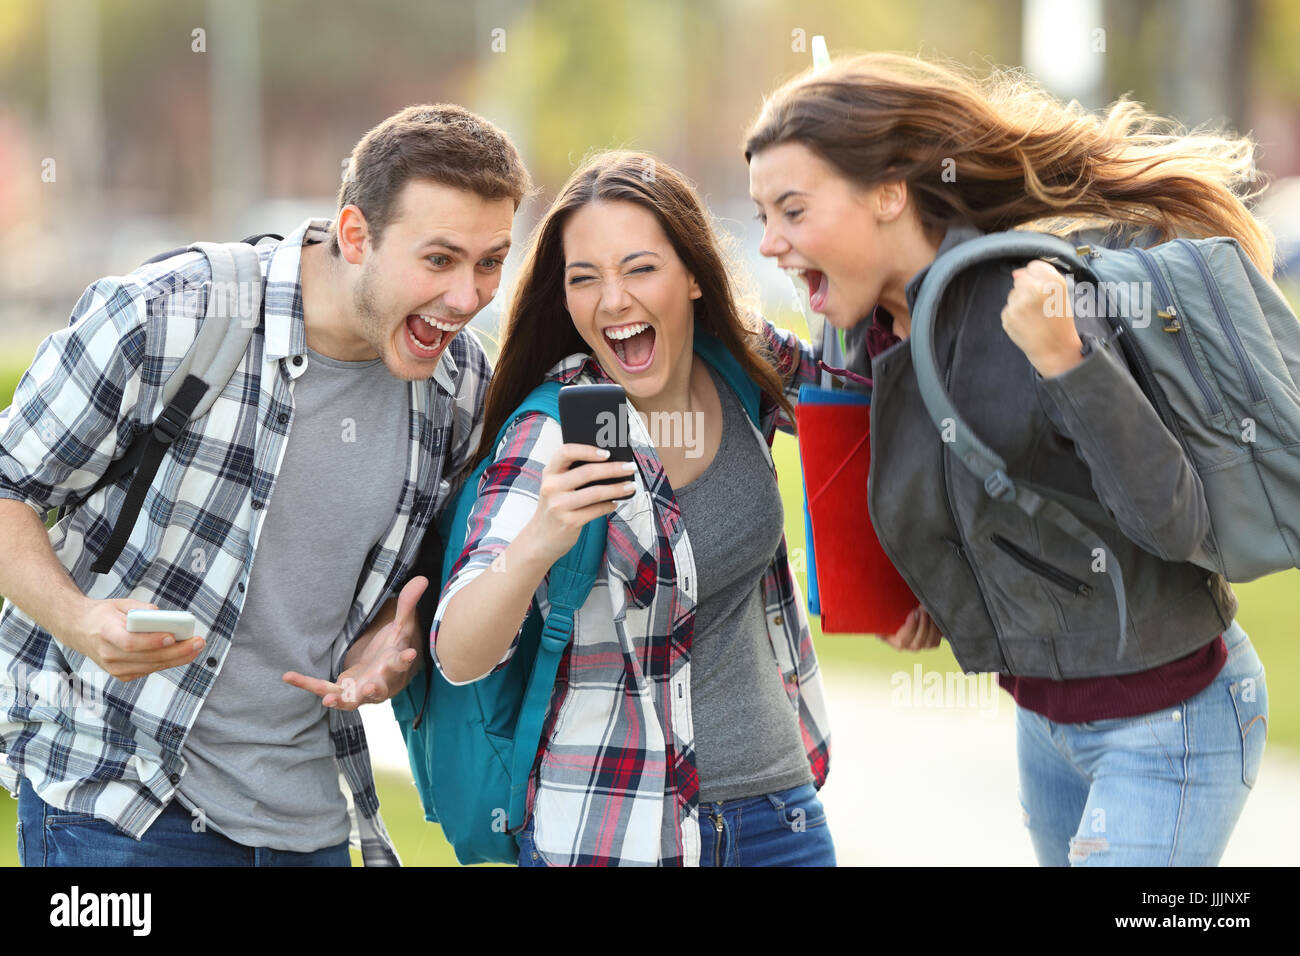 Front view of three excited students receiving good news on line in a mobile phone in an university campus or street - Stock Image